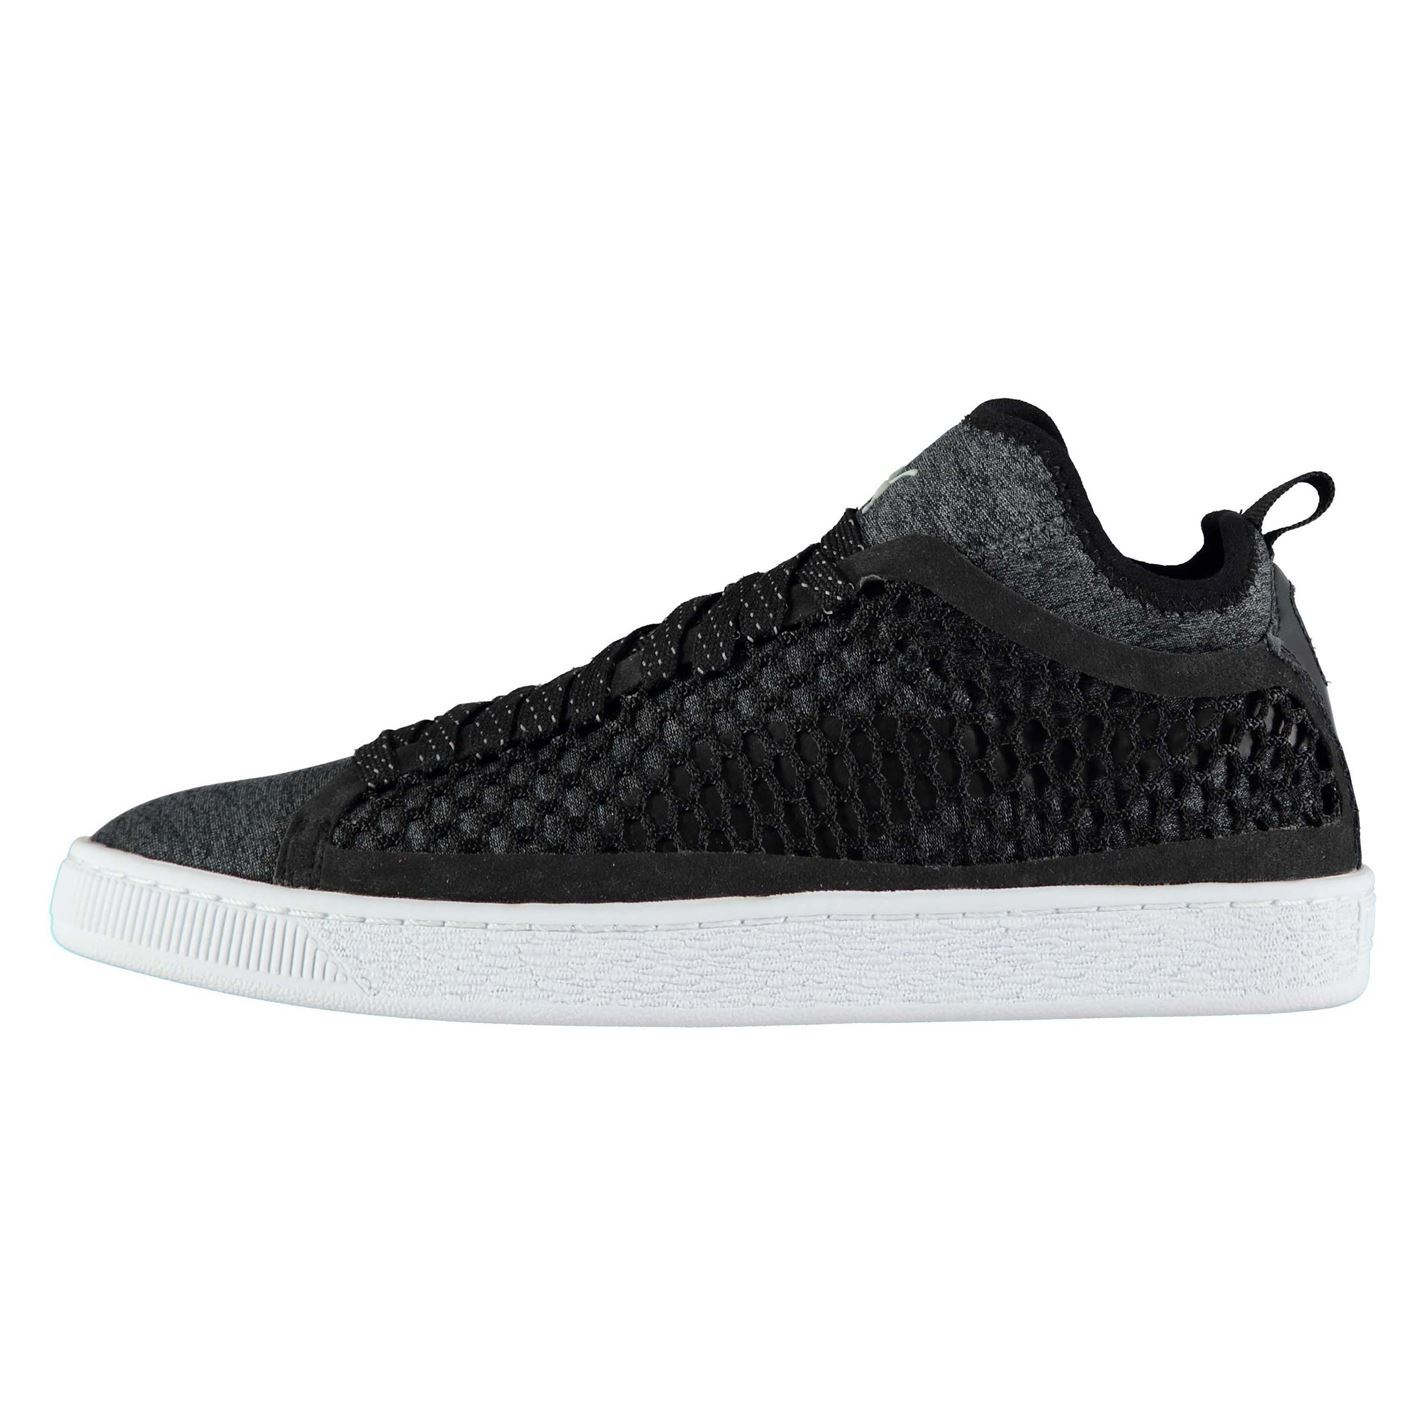 5a6956de7eb Details about Mens Puma Basket Classic Netted Trainers Court Lace Up  Lightweight New